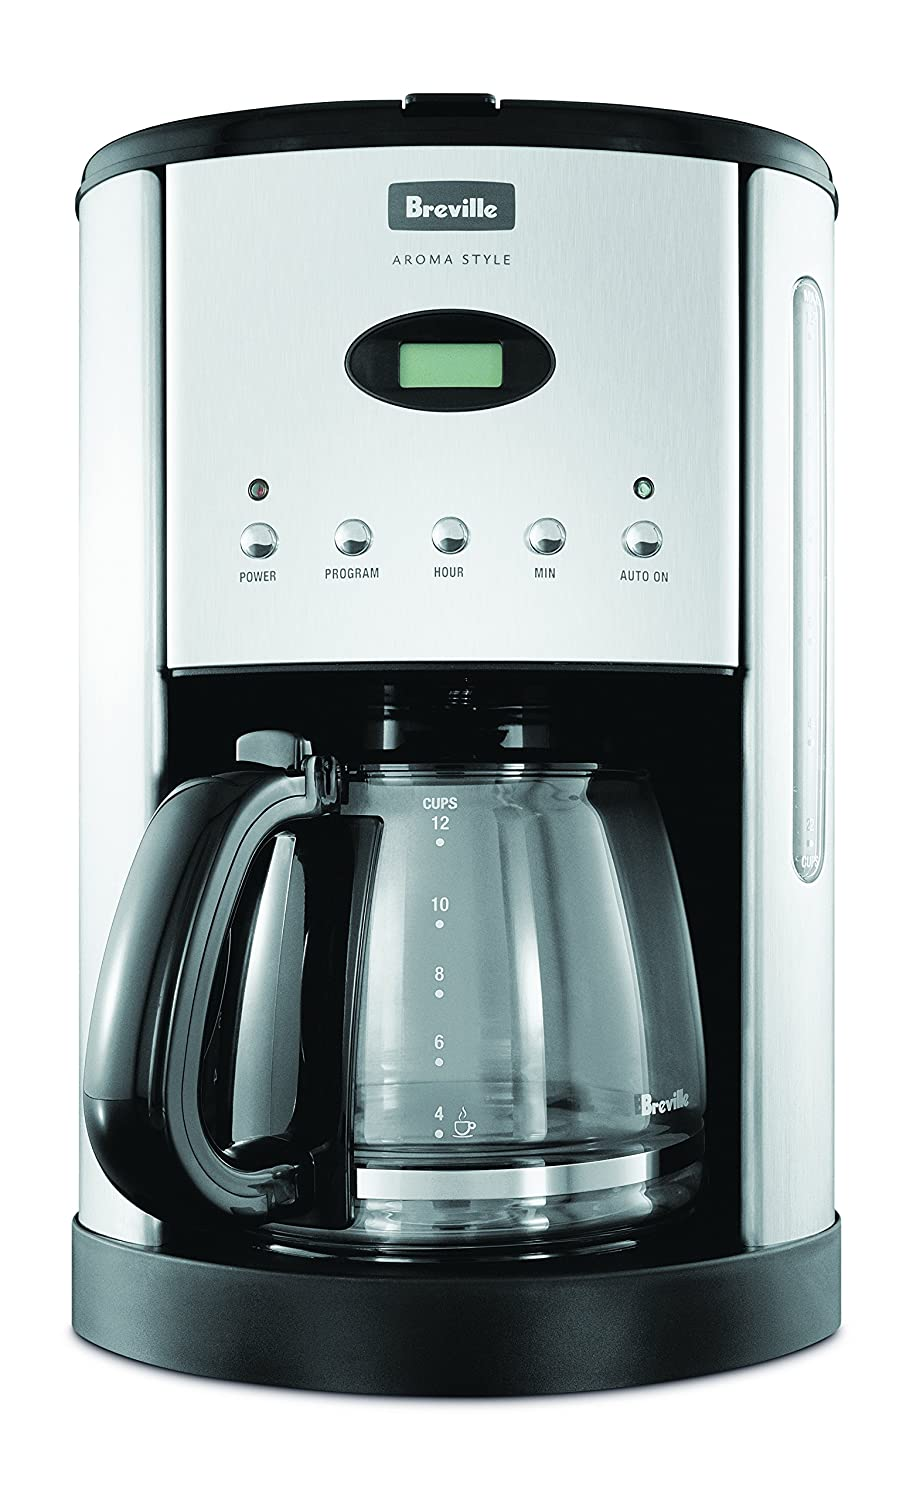 Breville Bcm600Blk Aroma Style Electronic Coffee Maker